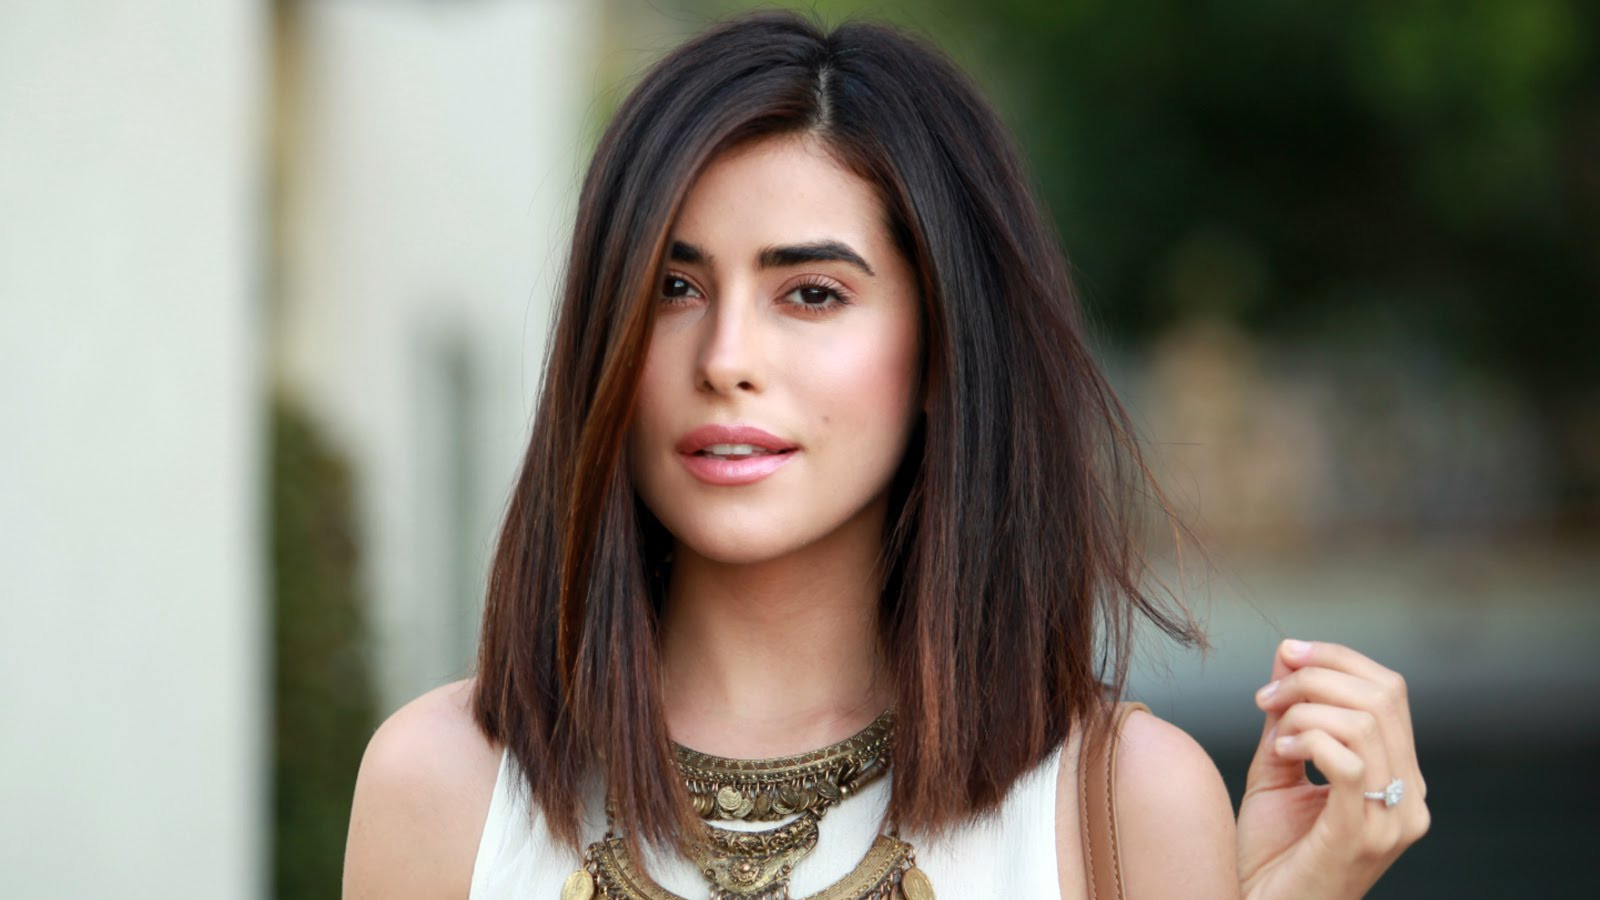 Best ideas about Straight Cut Hair . Save or Pin Trendy Lob Hairstyles You Can Have Today Now.